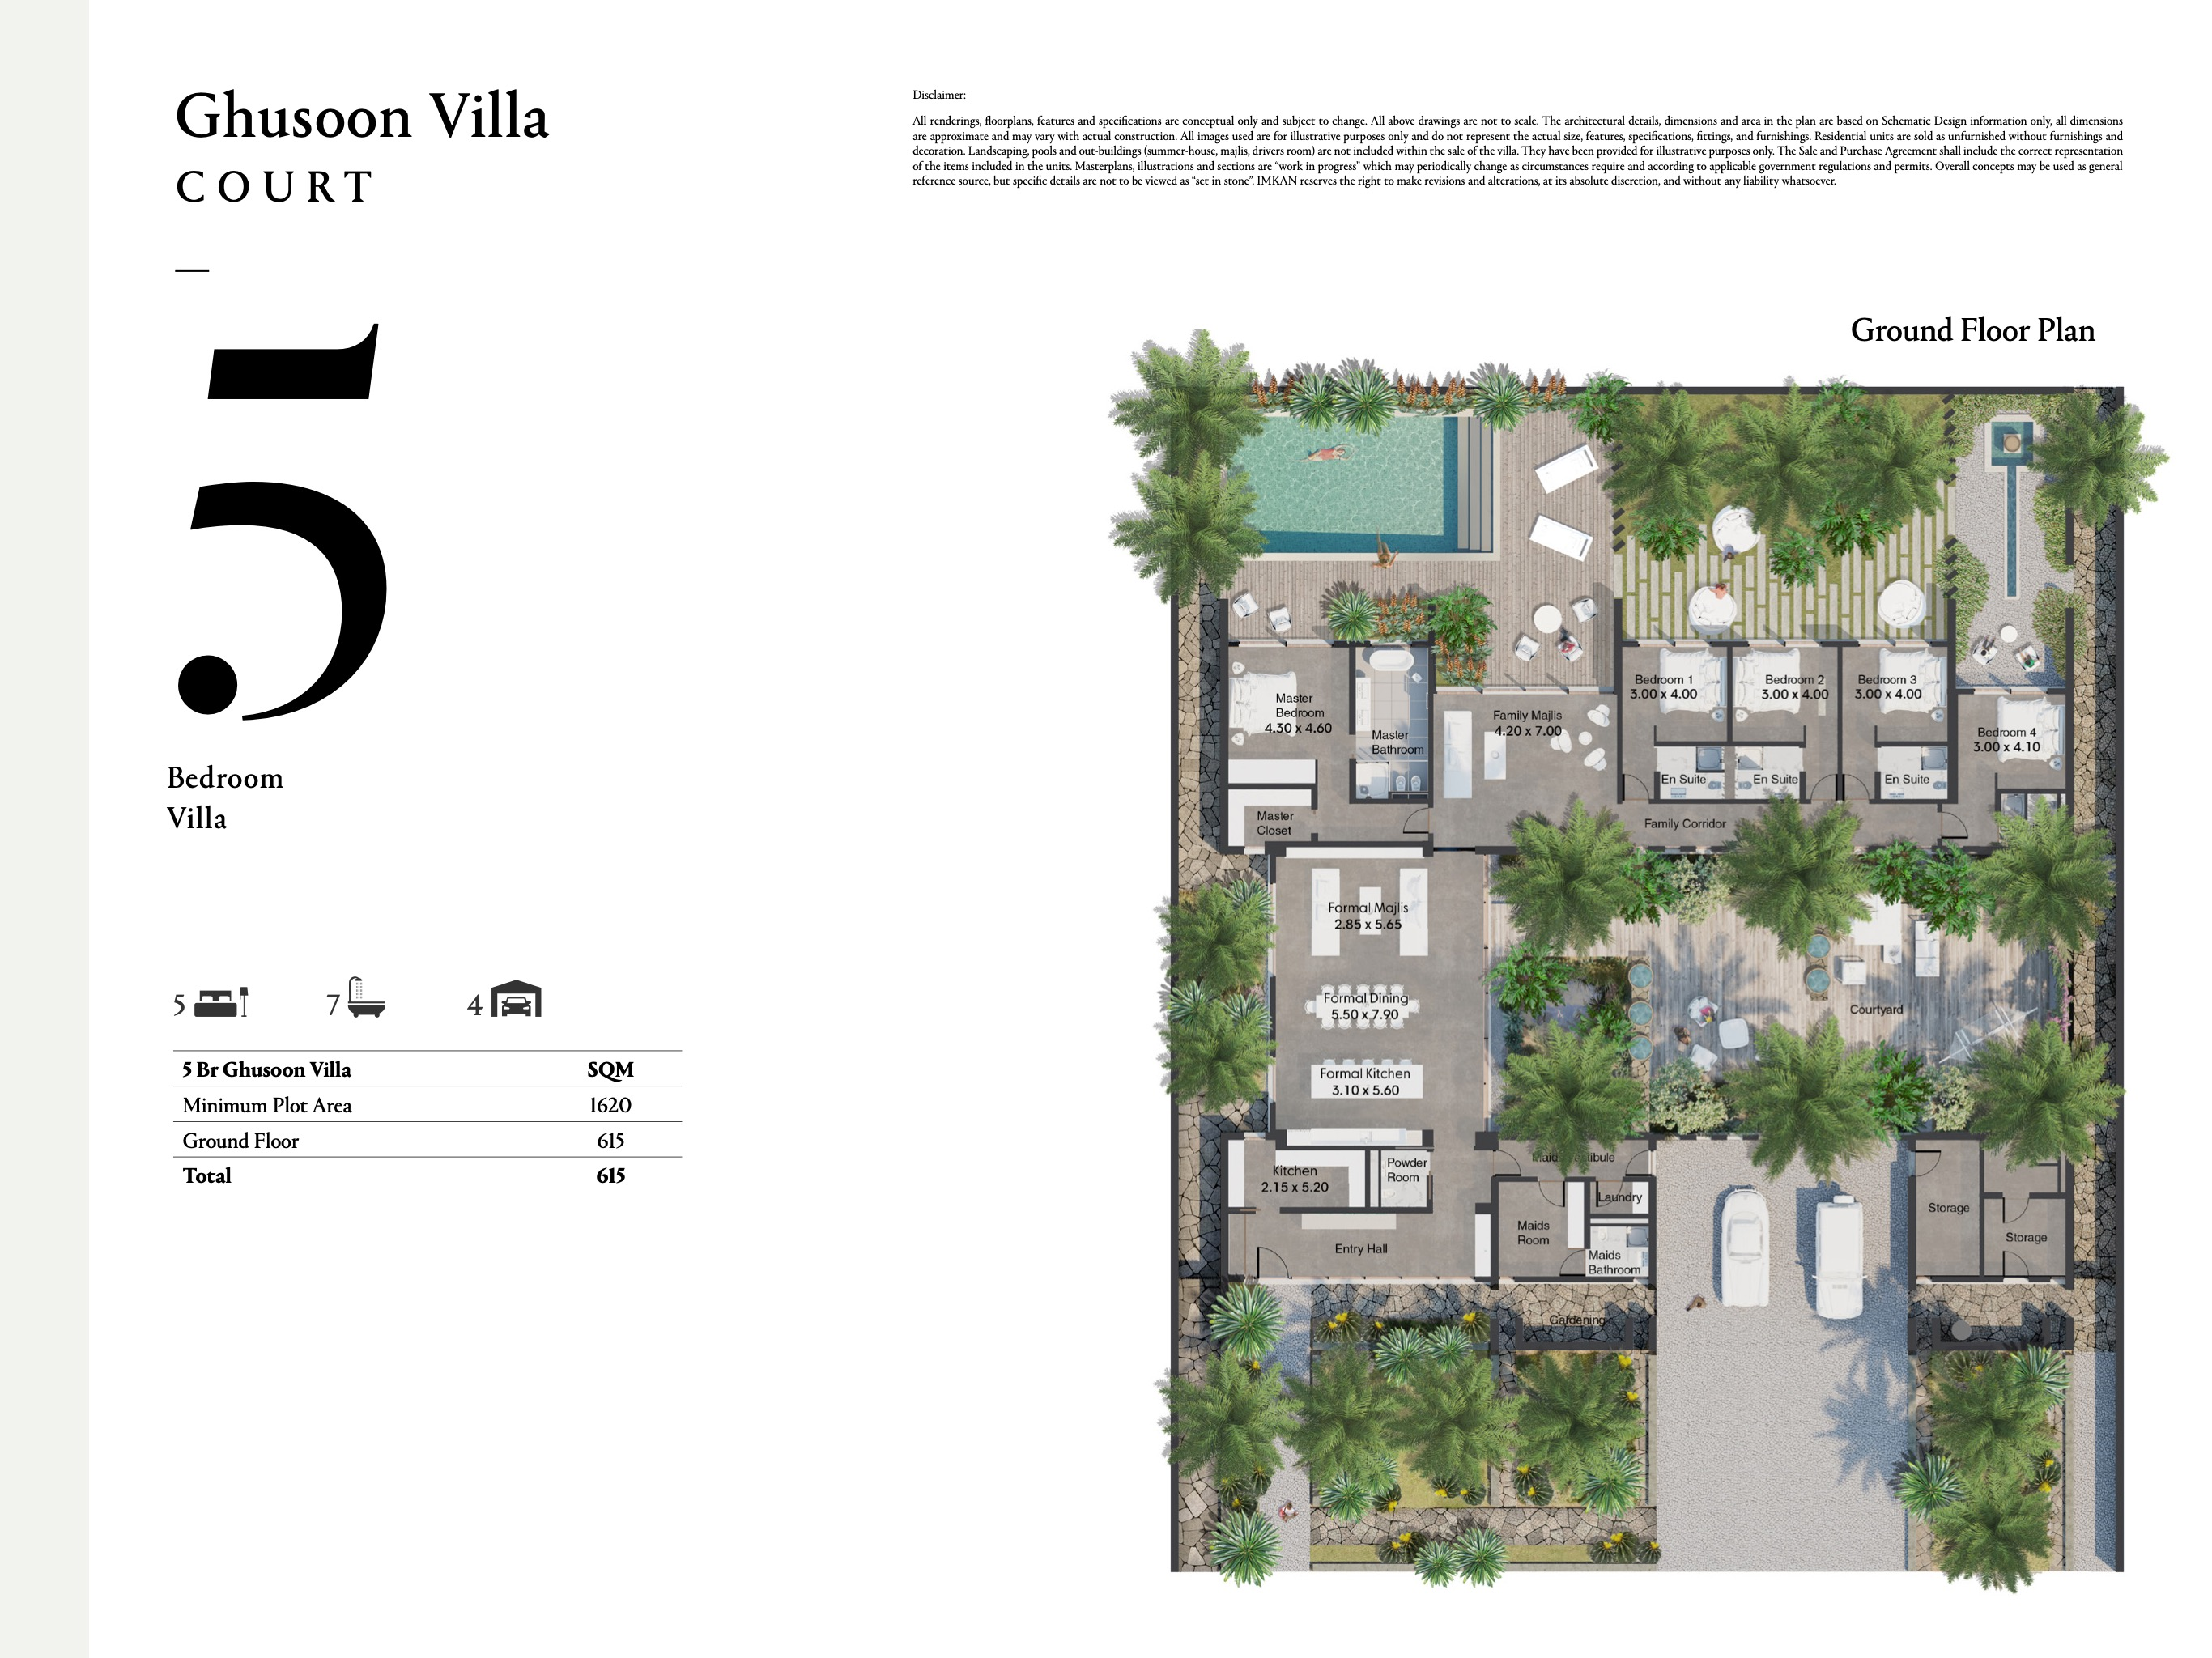 Ghusoon Villa - 5 bedroom with a size area of 615 sqm